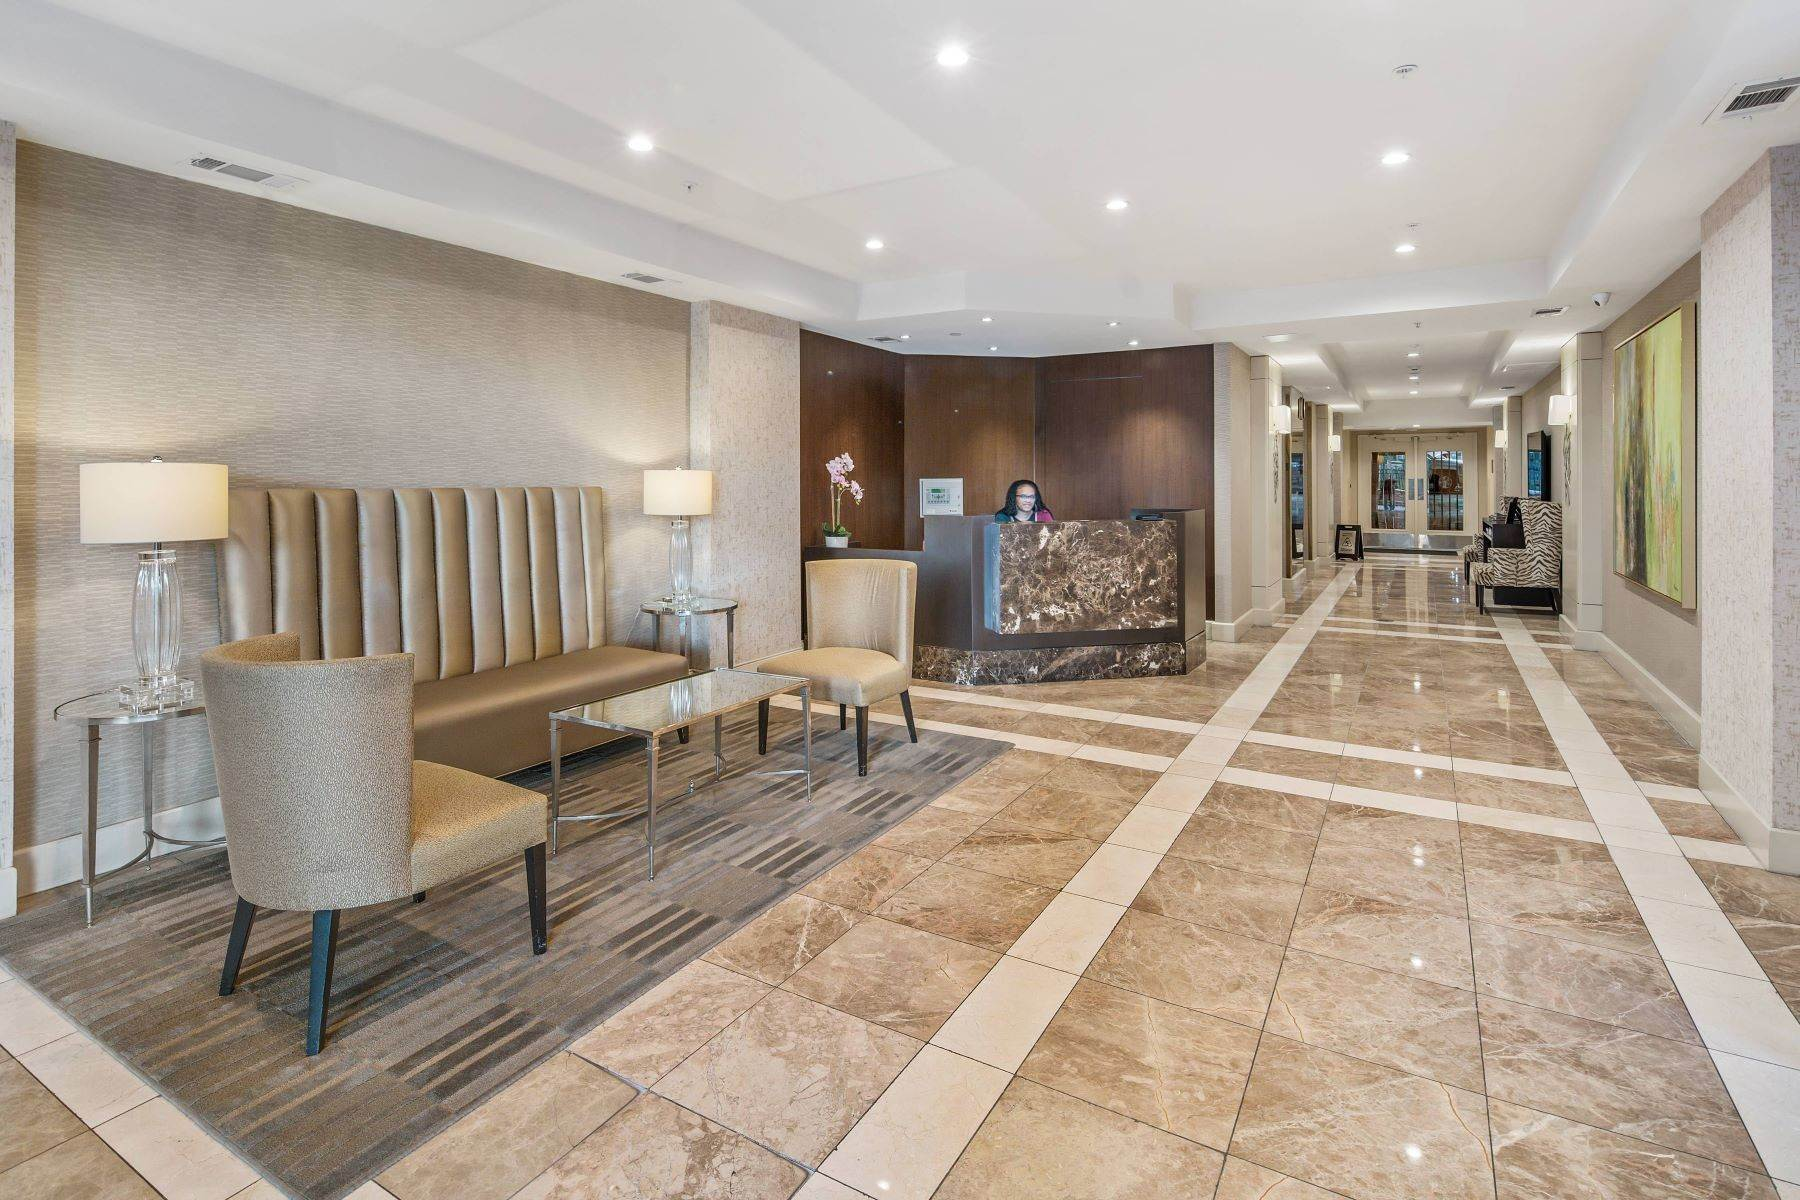 2. Condominiums for Sale at 3225 Turtle Creek Boulevard, Dallas, TX, 75219 3225 Turtle Creek Boulevard, Unit# 207 Dallas, Texas 75219 United States